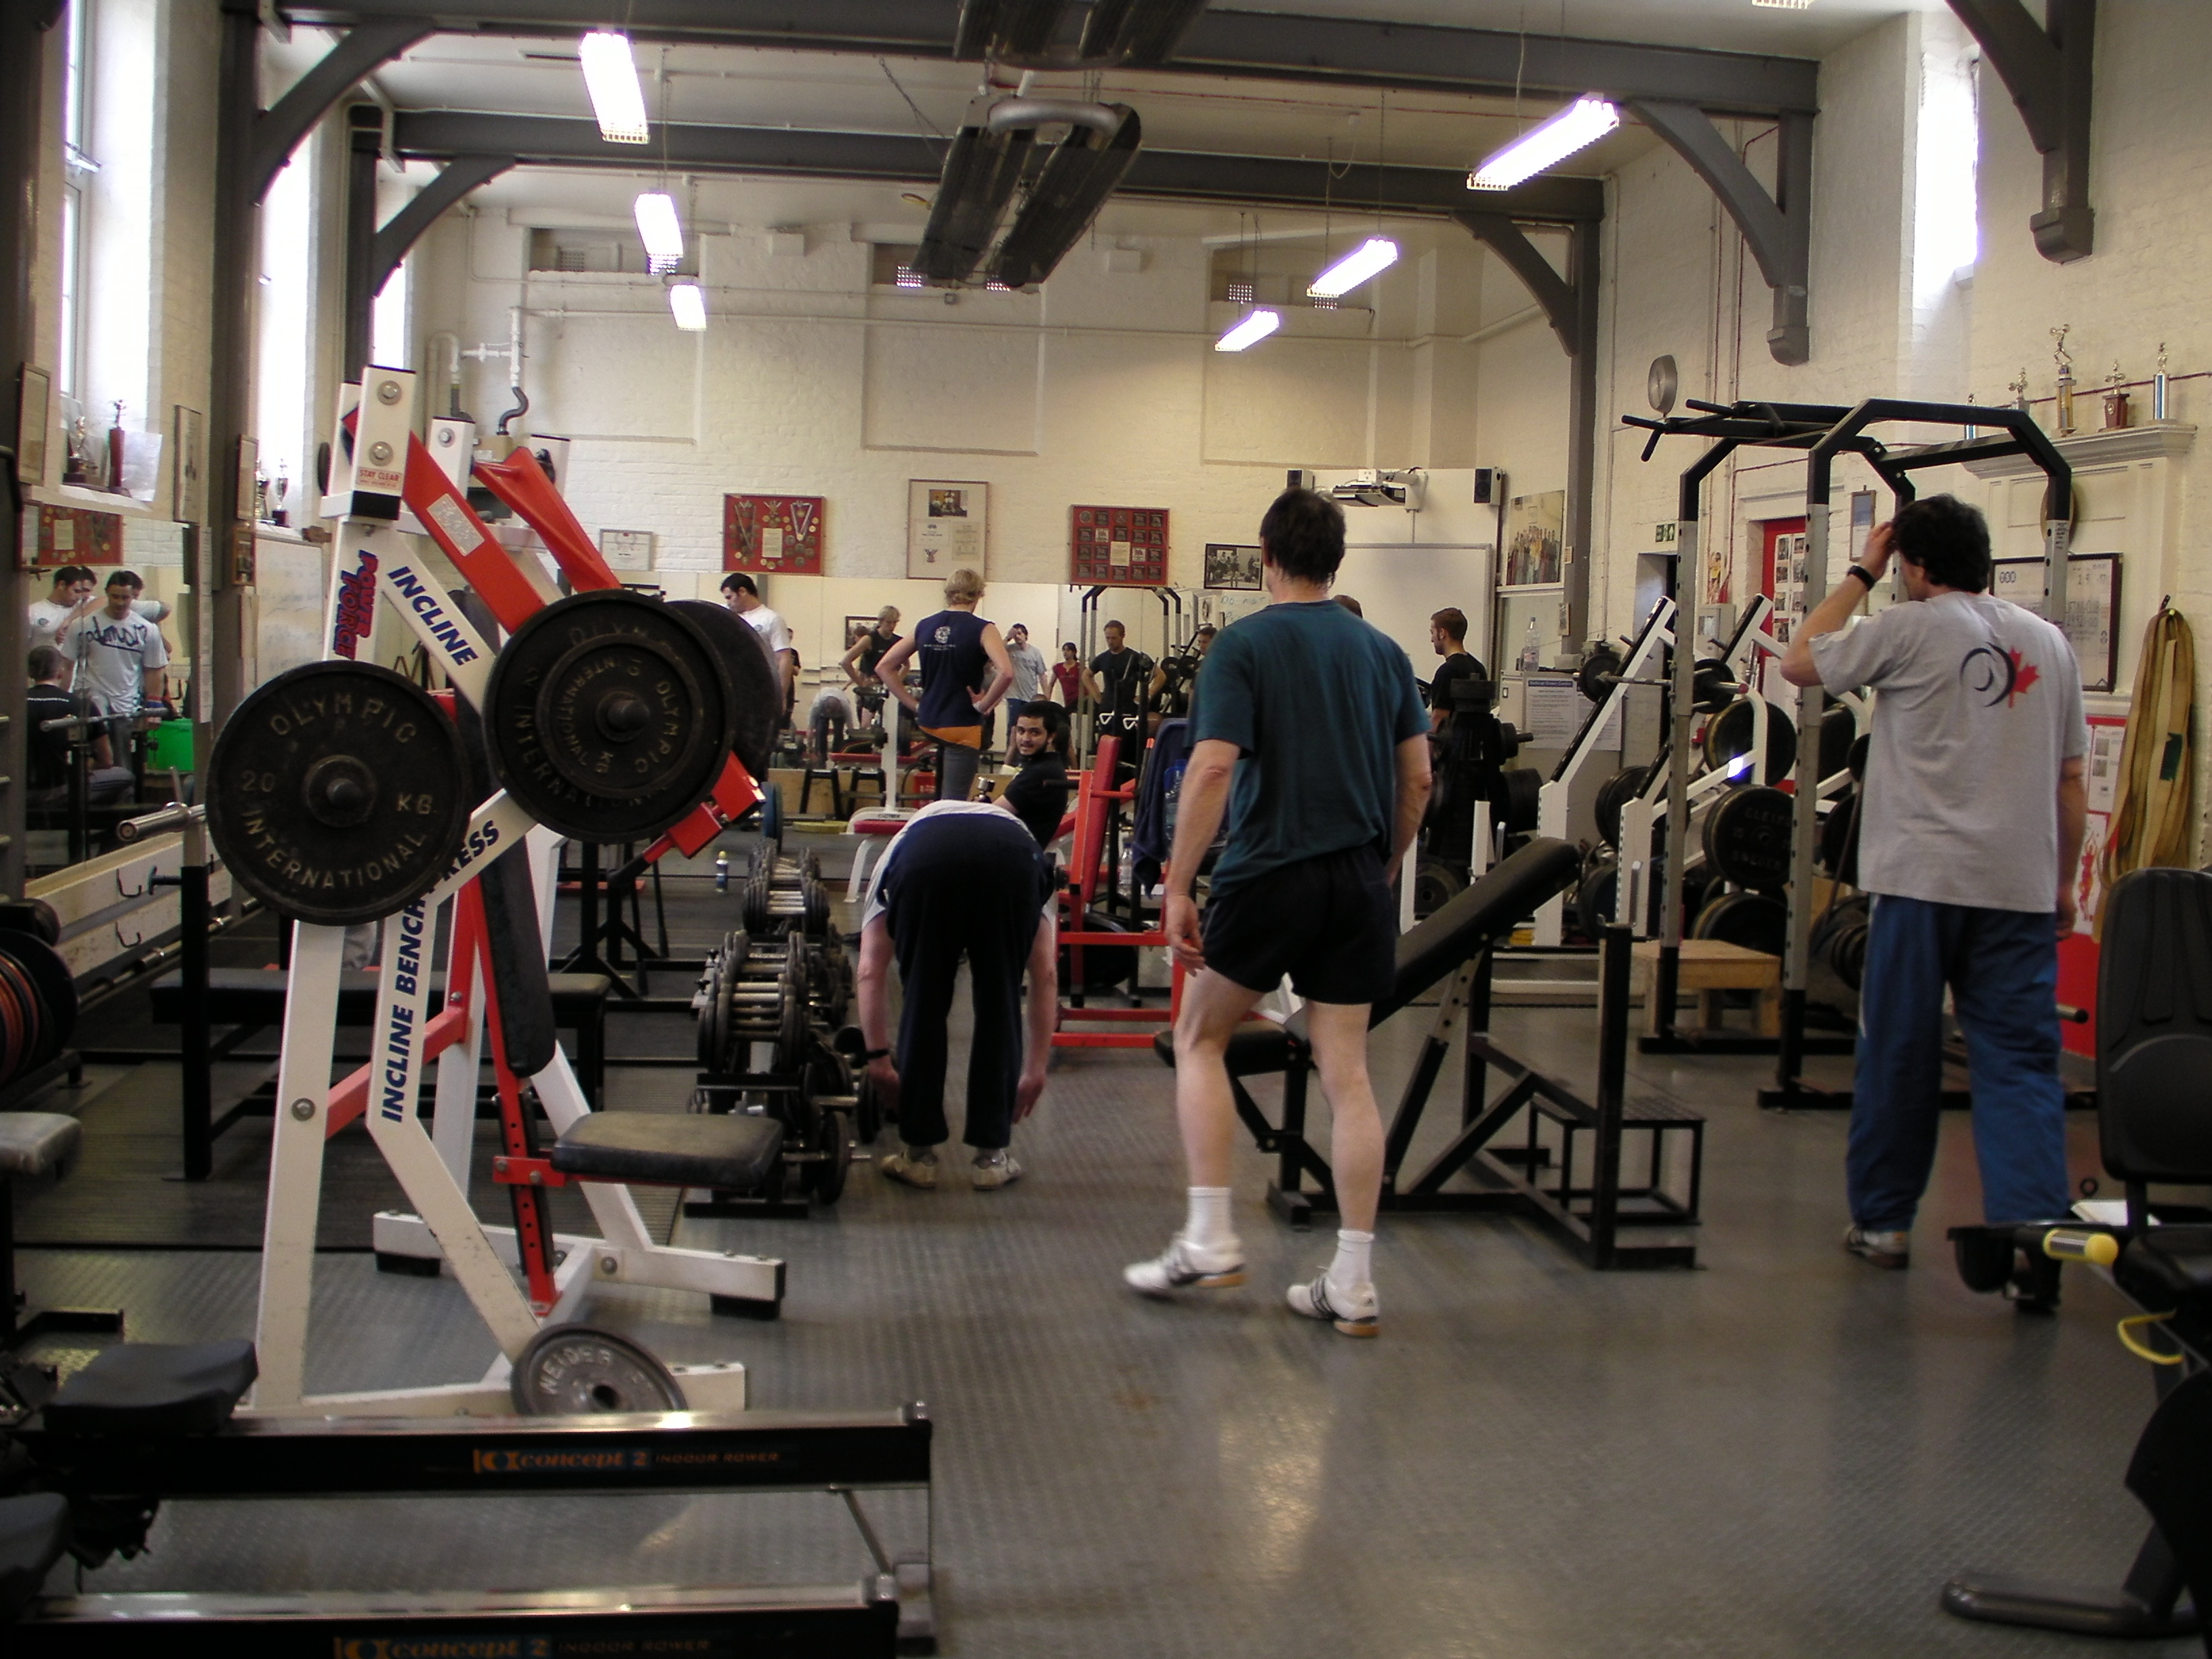 Inside the Bethnal Green Weightlifting Club